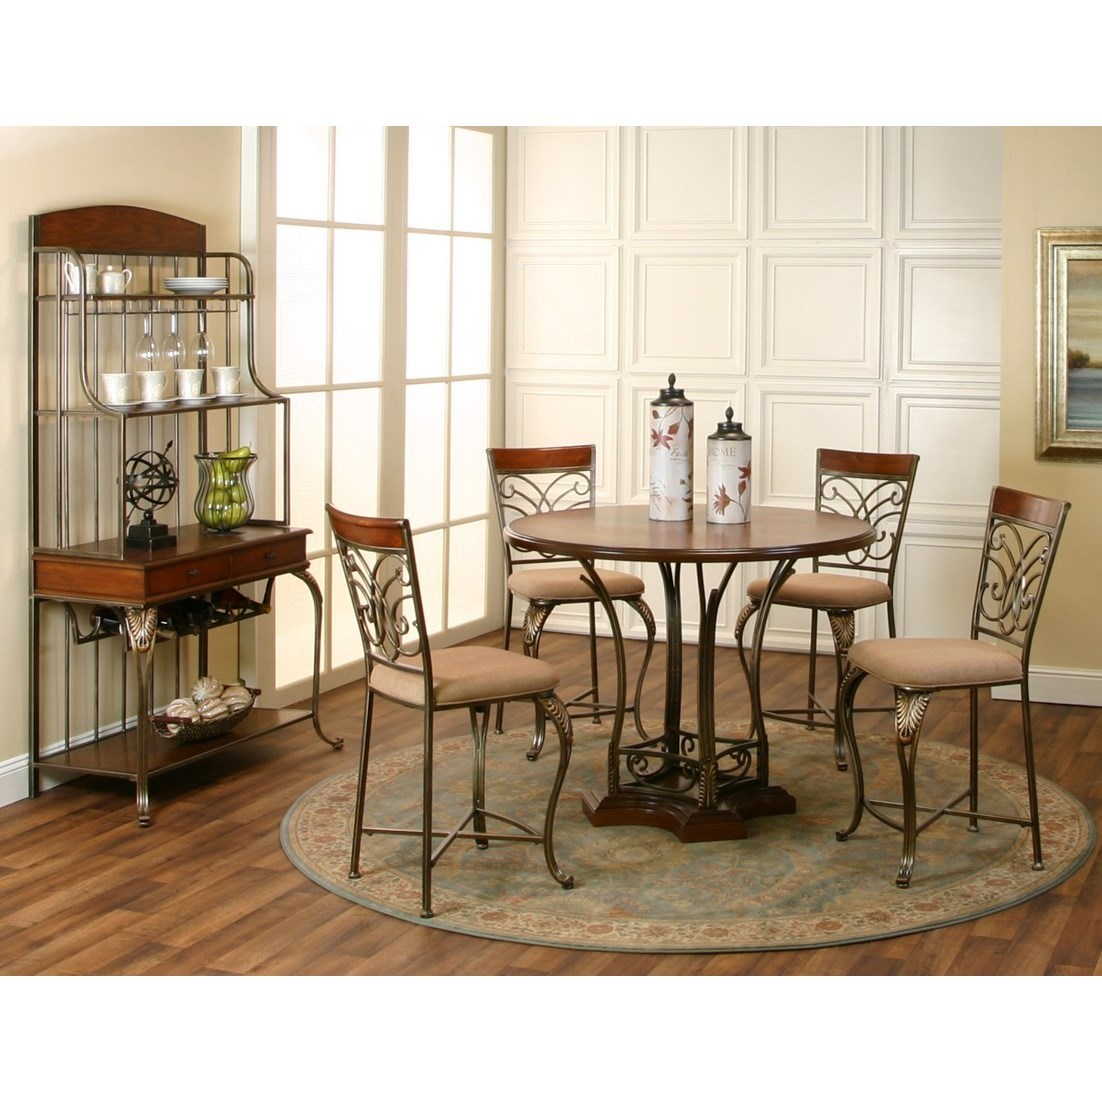 Dining Room Sets Nj: Cramco, Inc Harlow 5 Piece Counter Height Dining Set